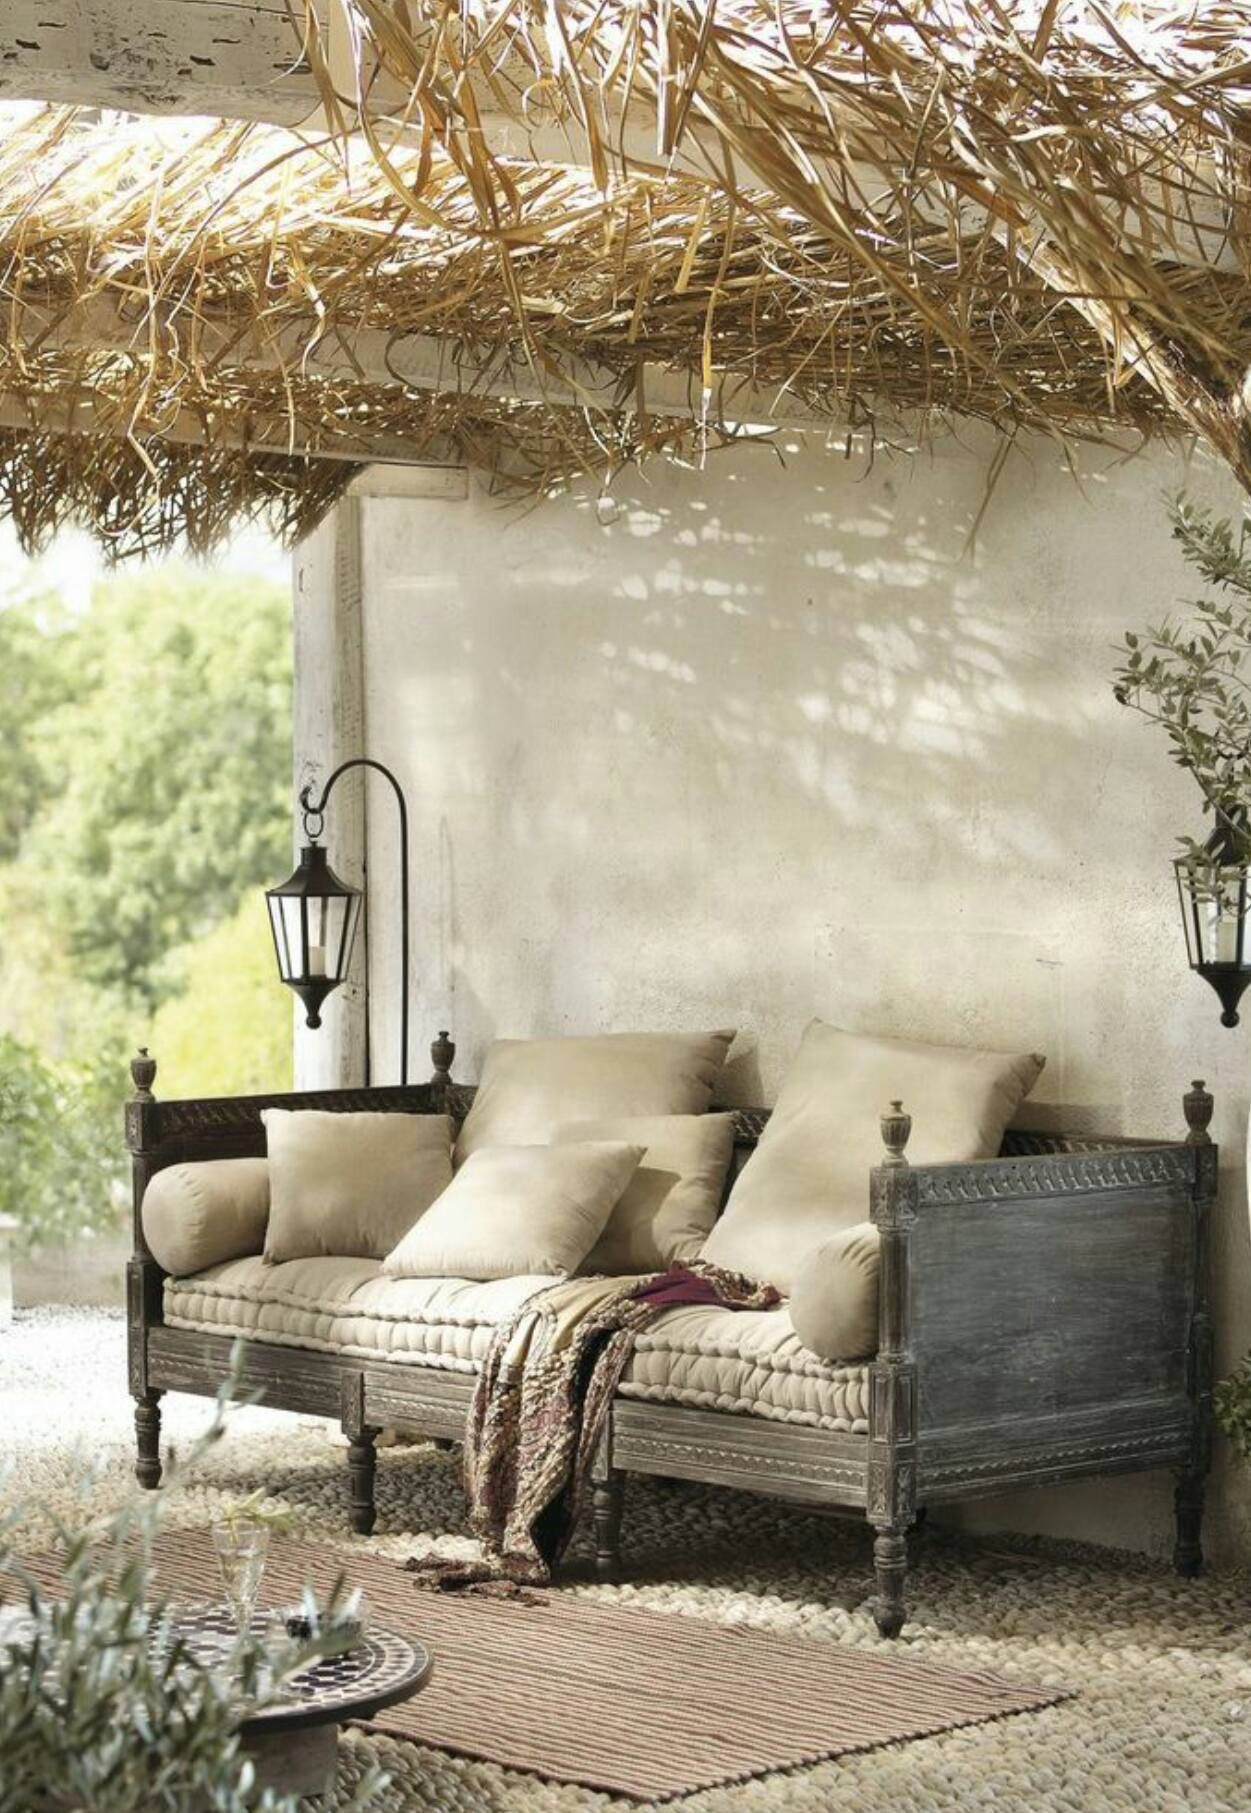 Pin by outi tyykilä on terassi pinterest house front furniture